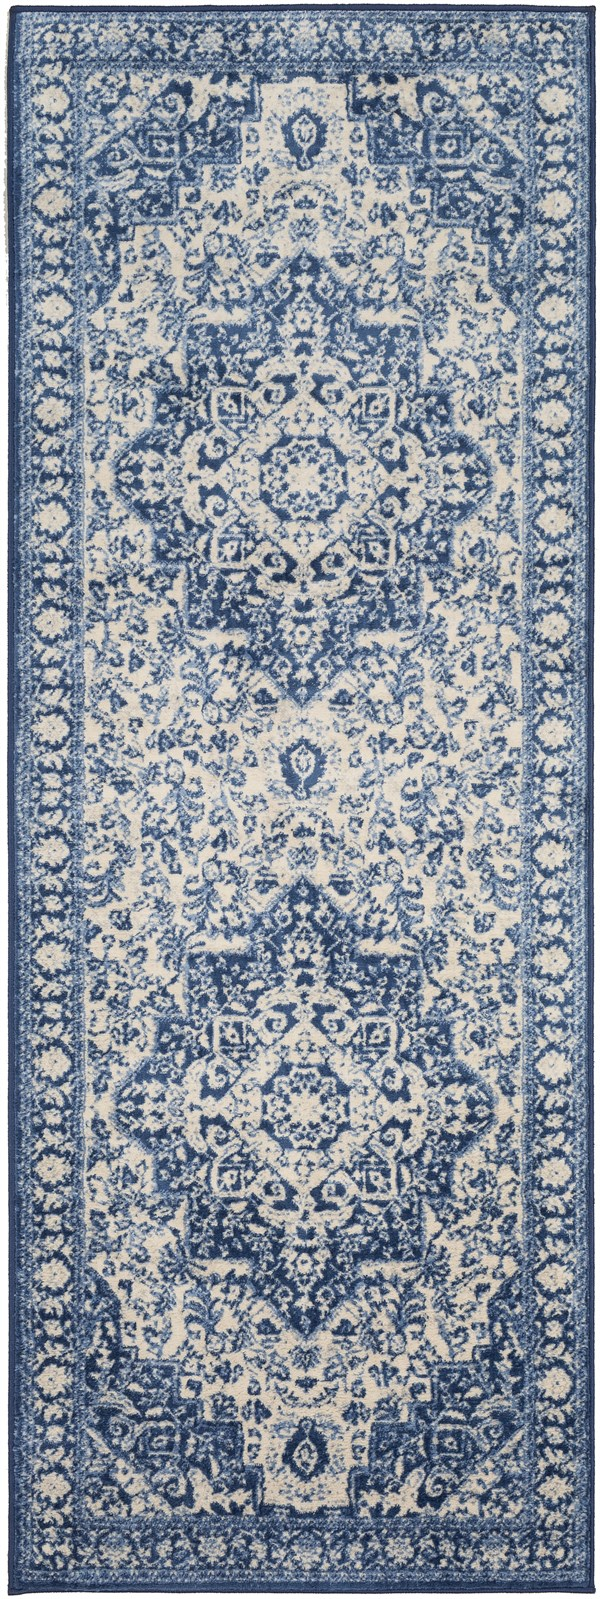 Blue, Navy, Cream Traditional / Oriental Area Rug